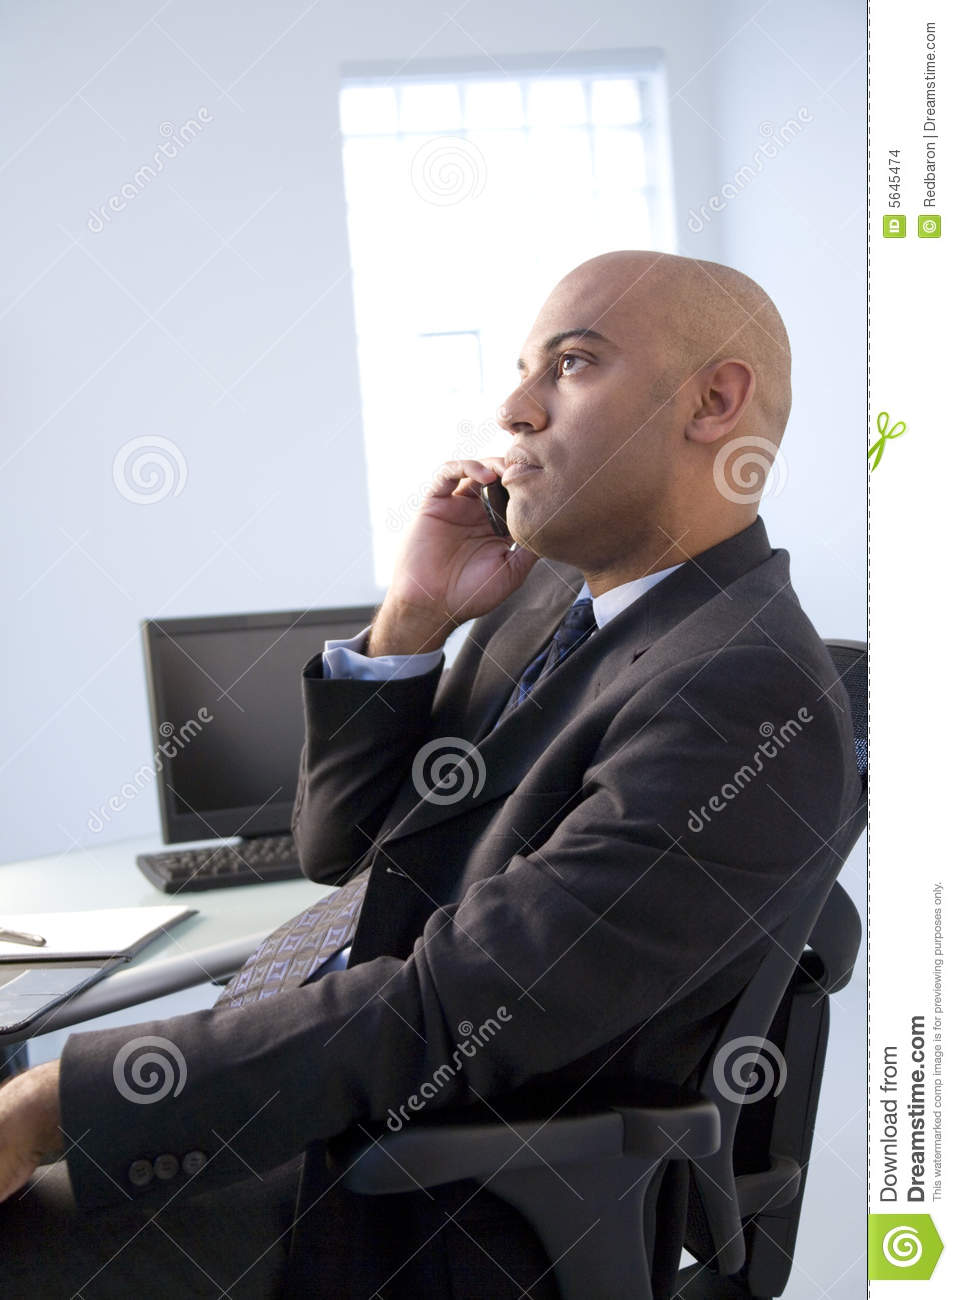 Daydreaming businessman